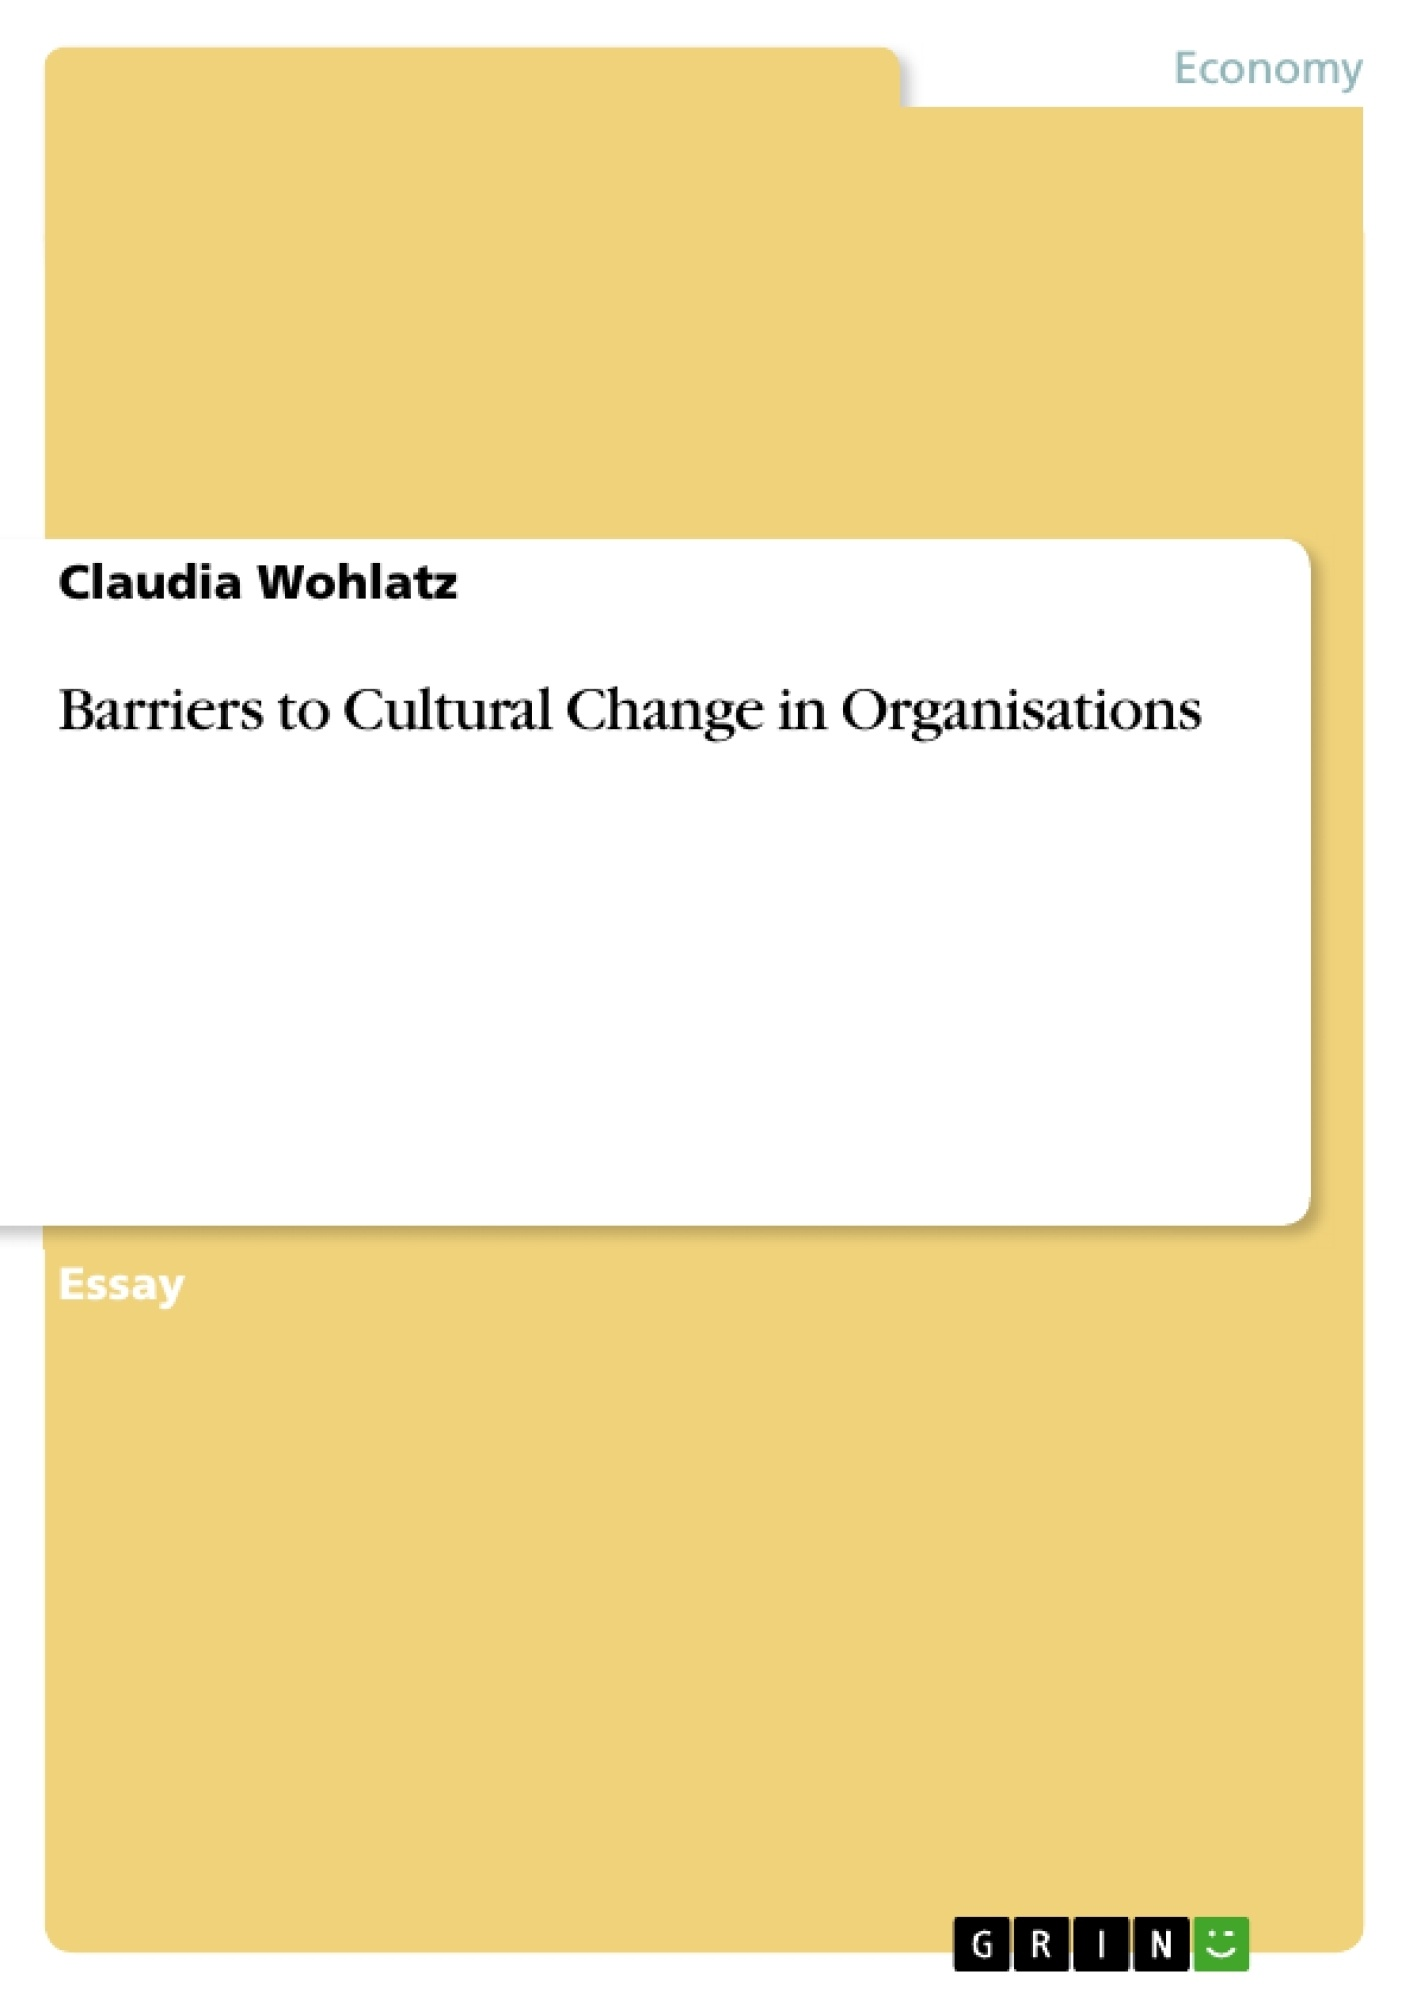 barriers to cultural change in organisations publish your barriers to cultural change in organisations publish your master s thesis bachelor s thesis essay or term paper